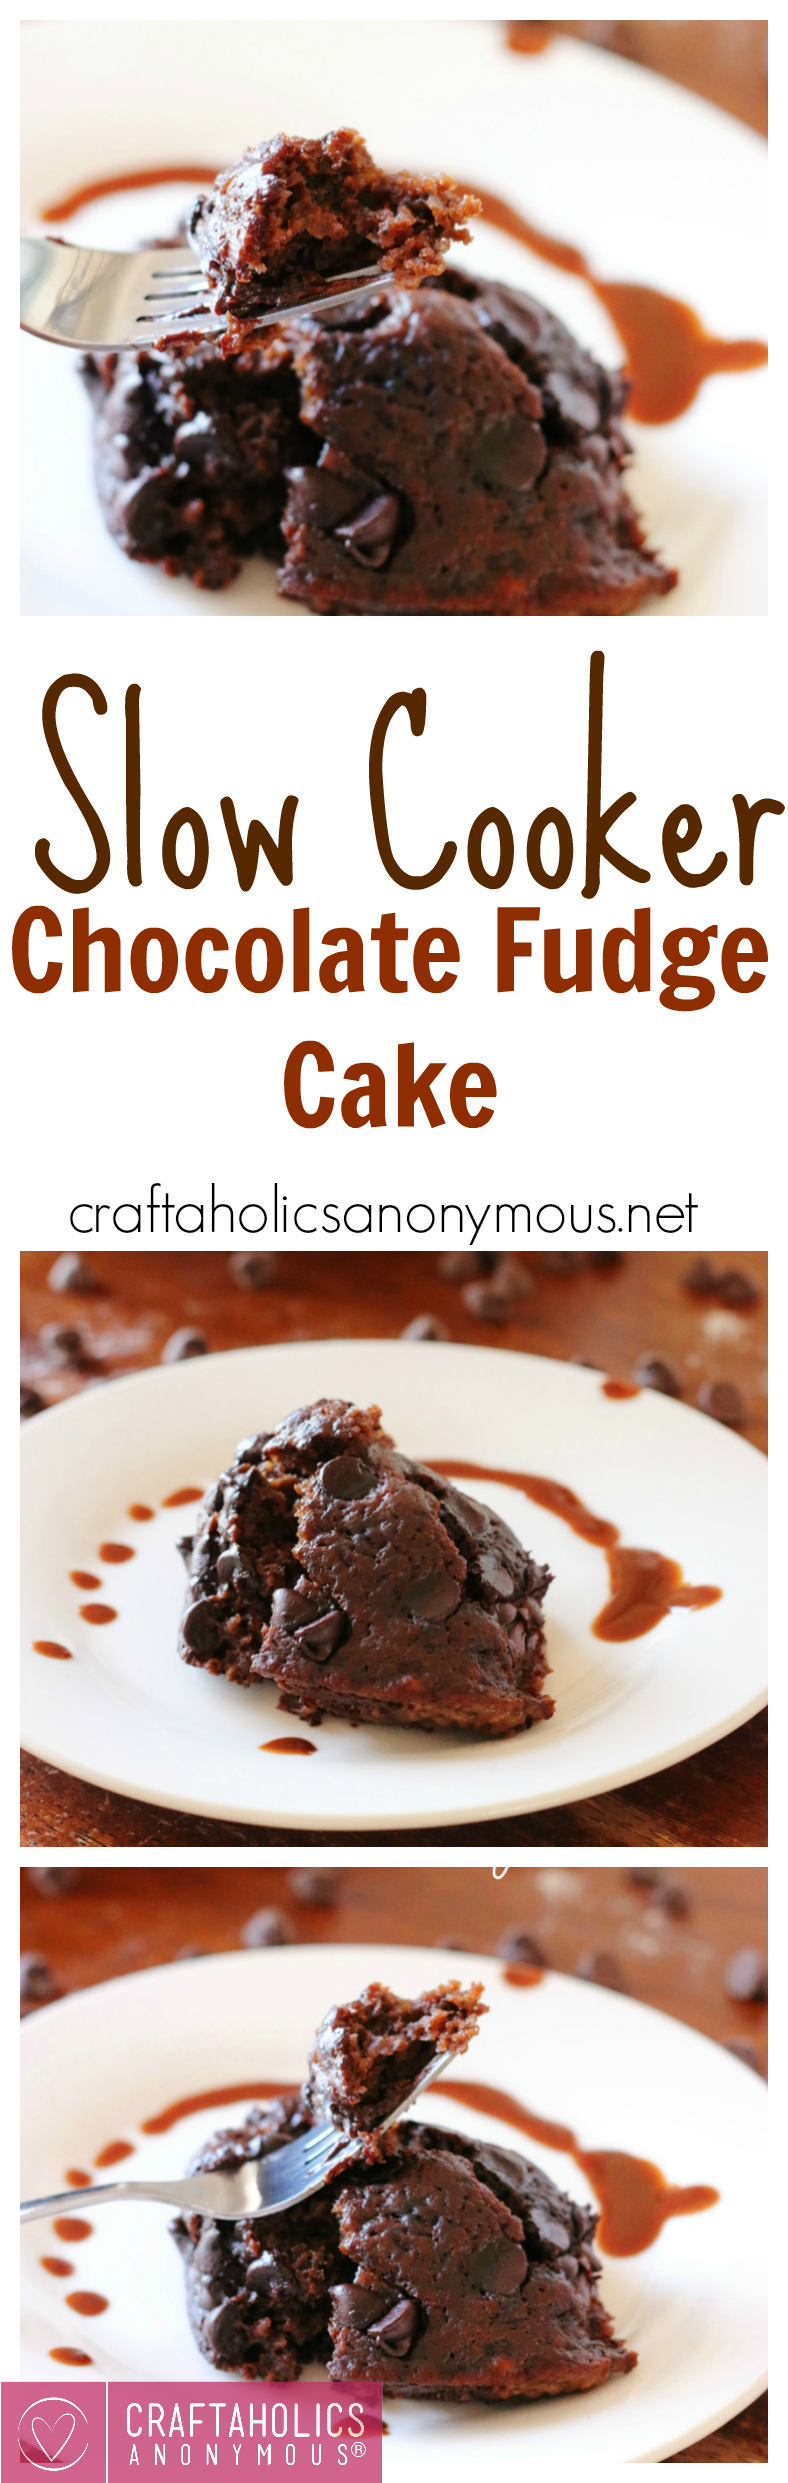 Slow Cooker Chocolate Fudge Cake - the easiest and most delicious chocolate cake made in your slow cooker! Get the recipe at craftaholicsanonymous.net!